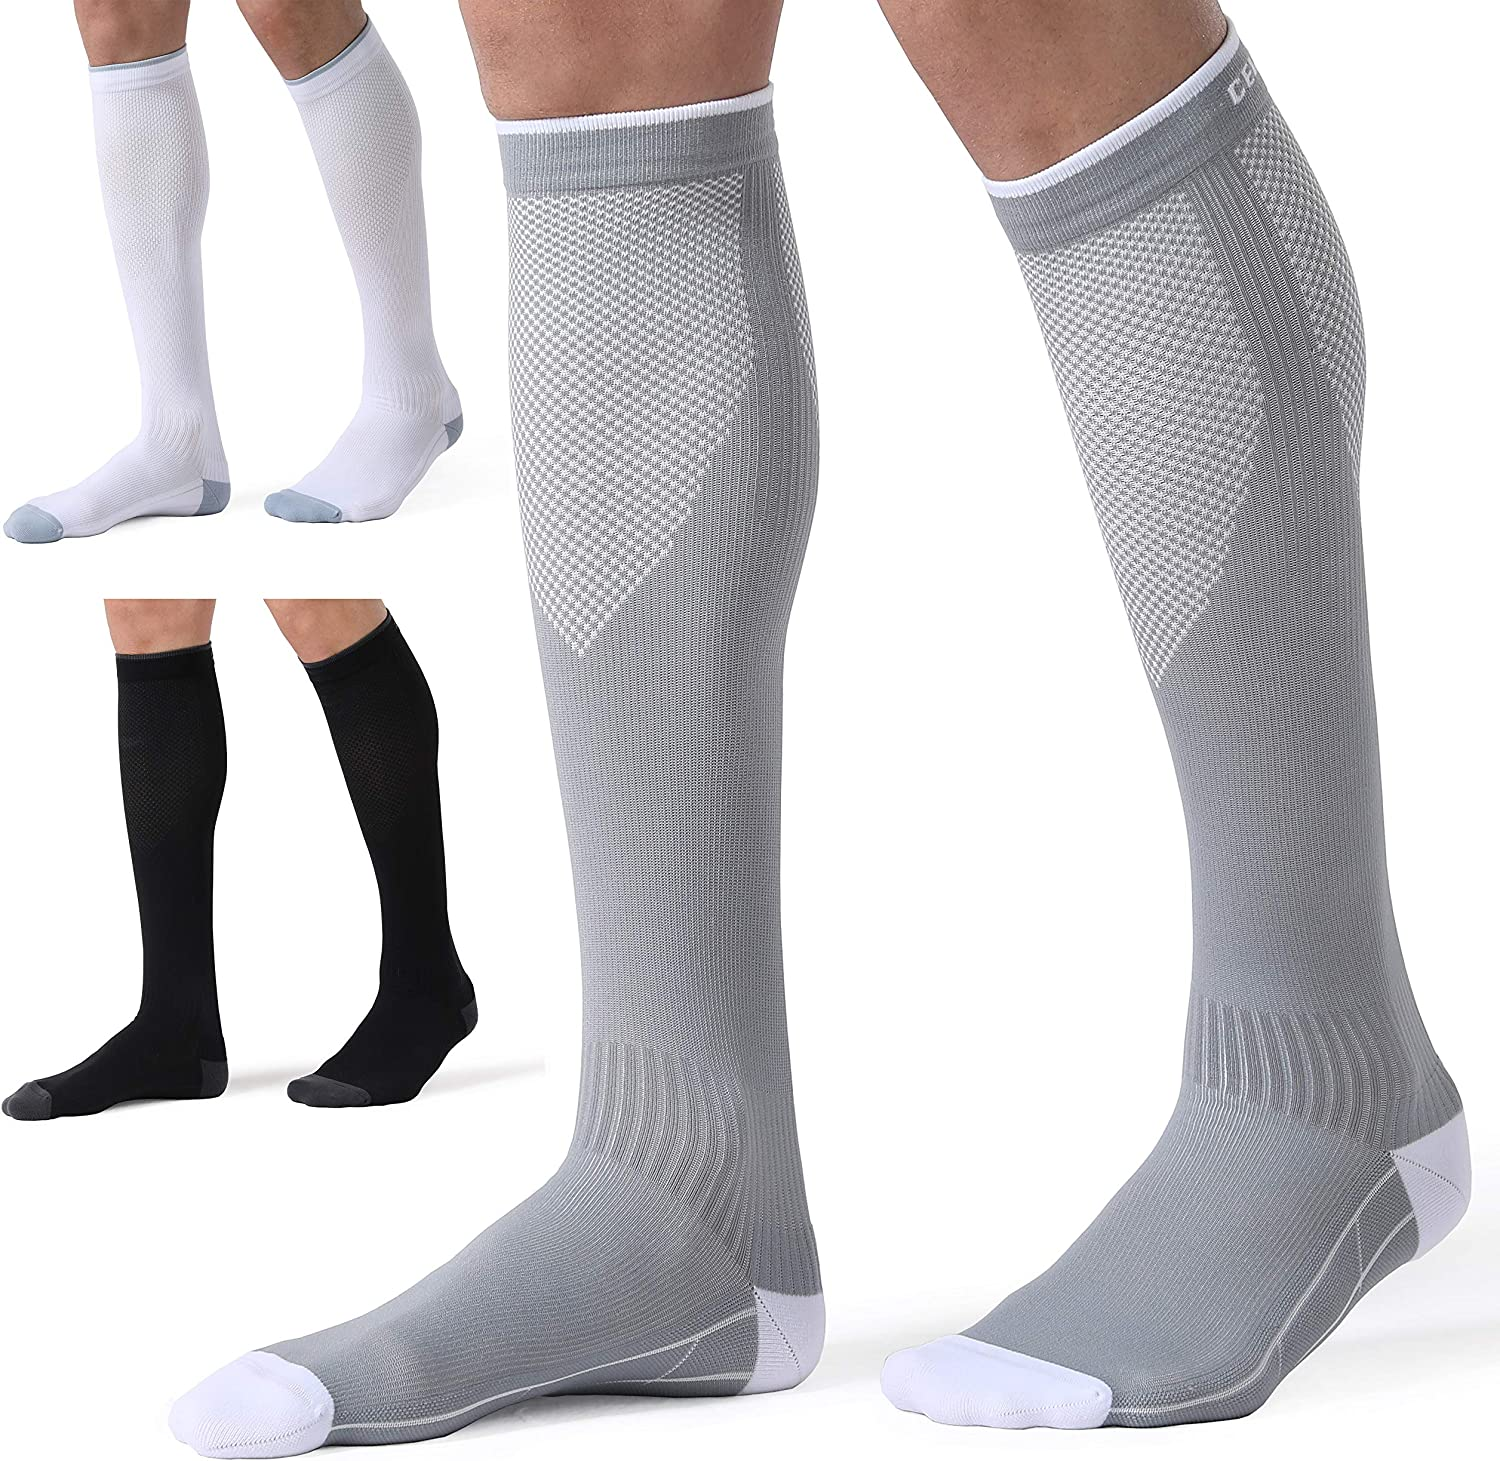 CelerSport 3 Pairs Compression Socks for Men and Women 20-30 mmHg Running Support Socks